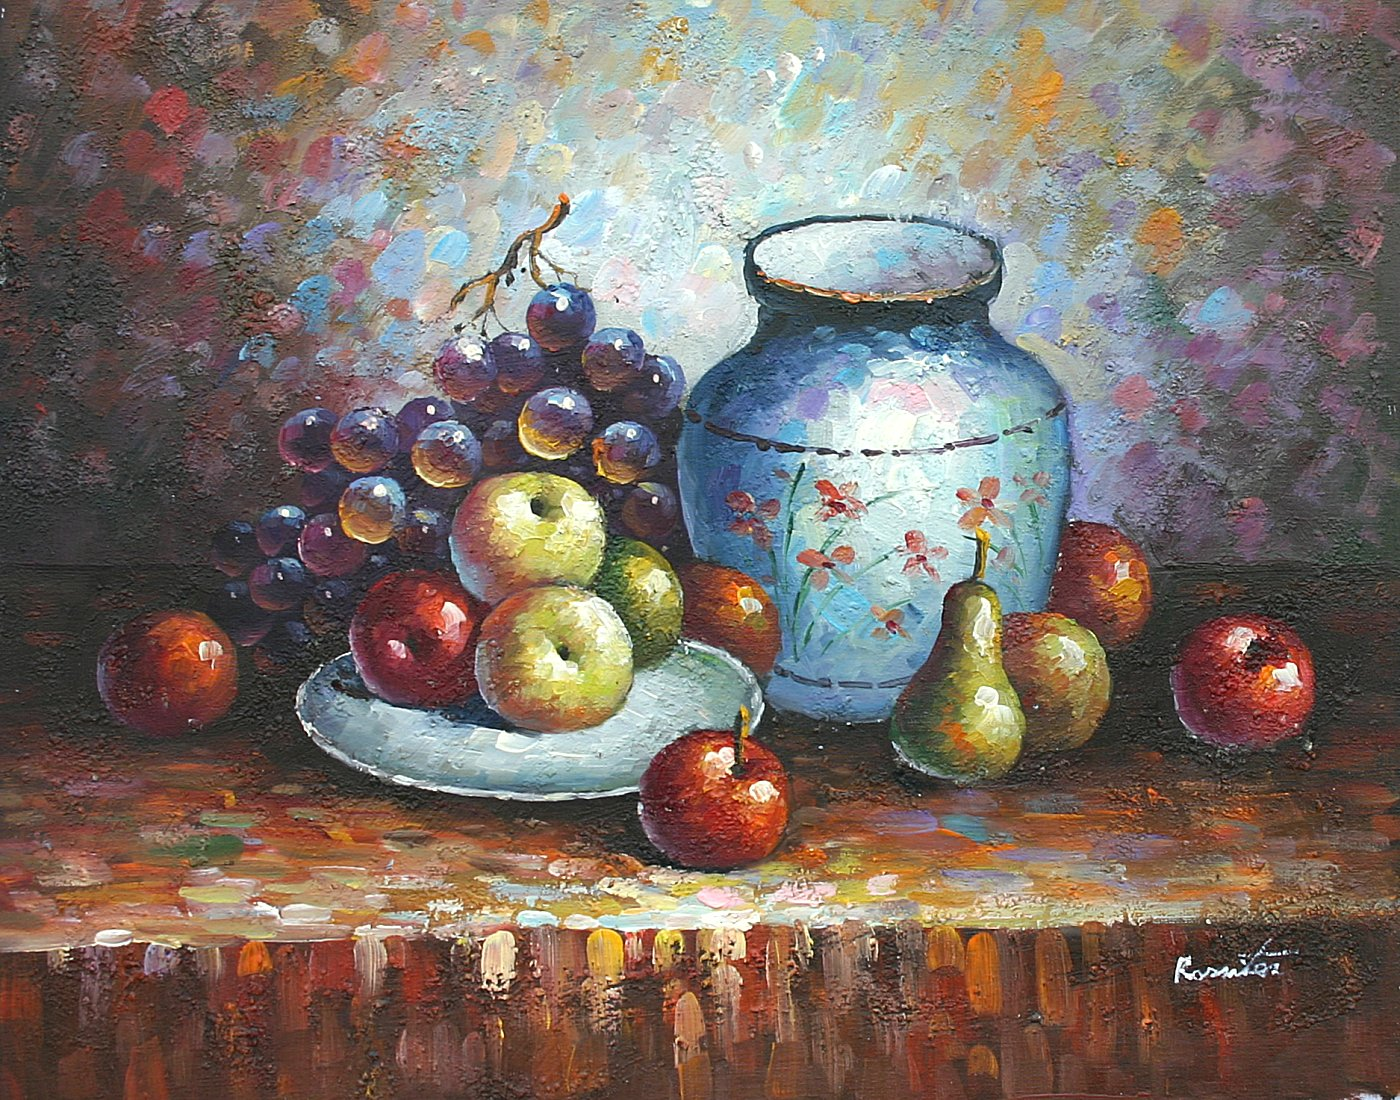 Details About 16 X20 Oil Painting On Canvas Fruit Still Life Genuine Hand Painted